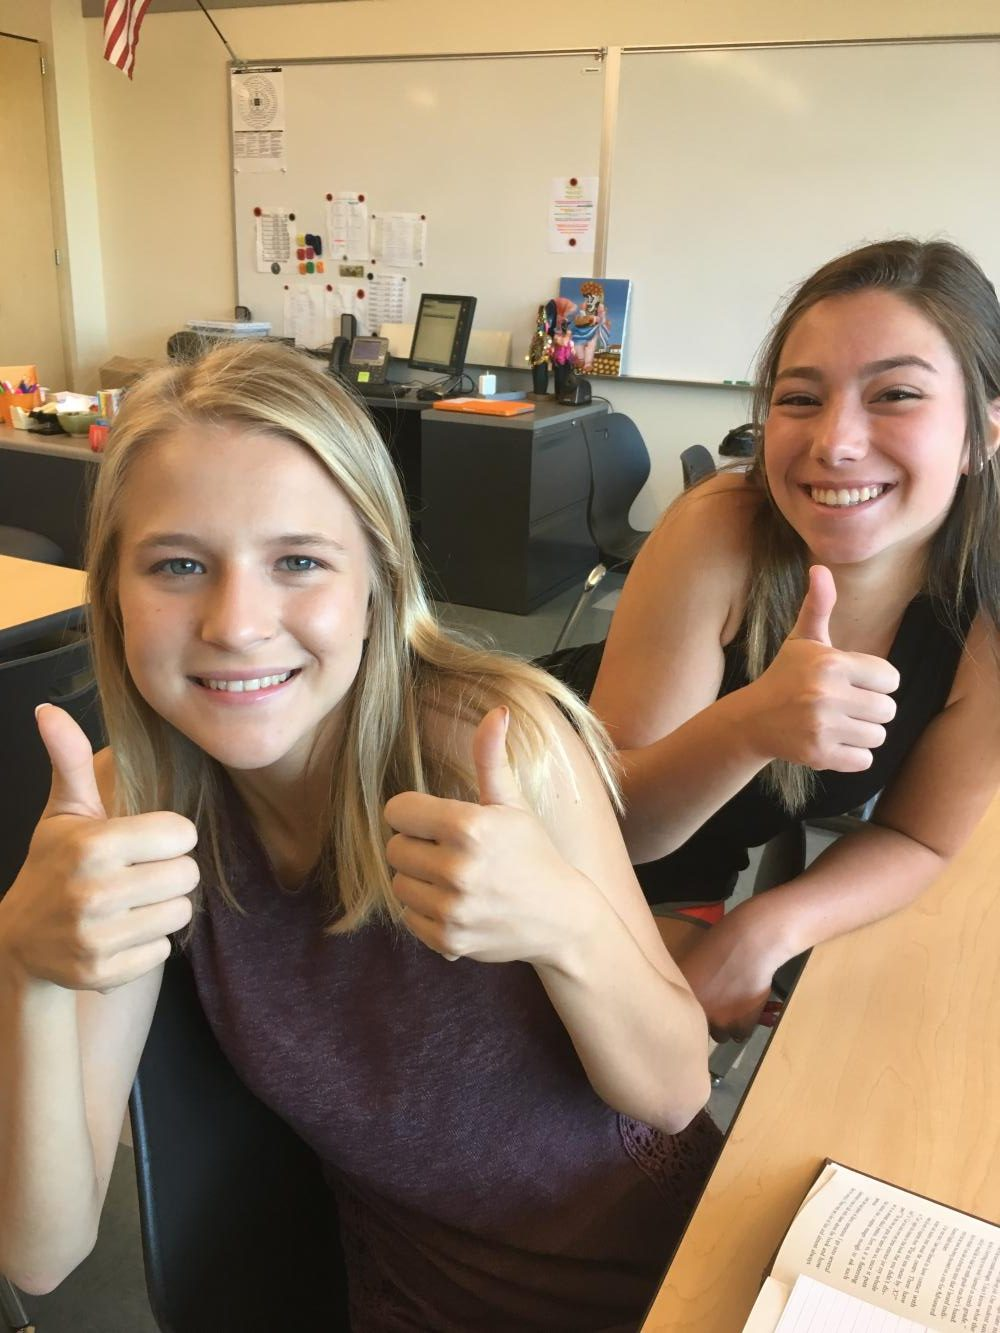 Juniors Haley Radcliffe and Kayla Dell give thumbs up for Journalism class.